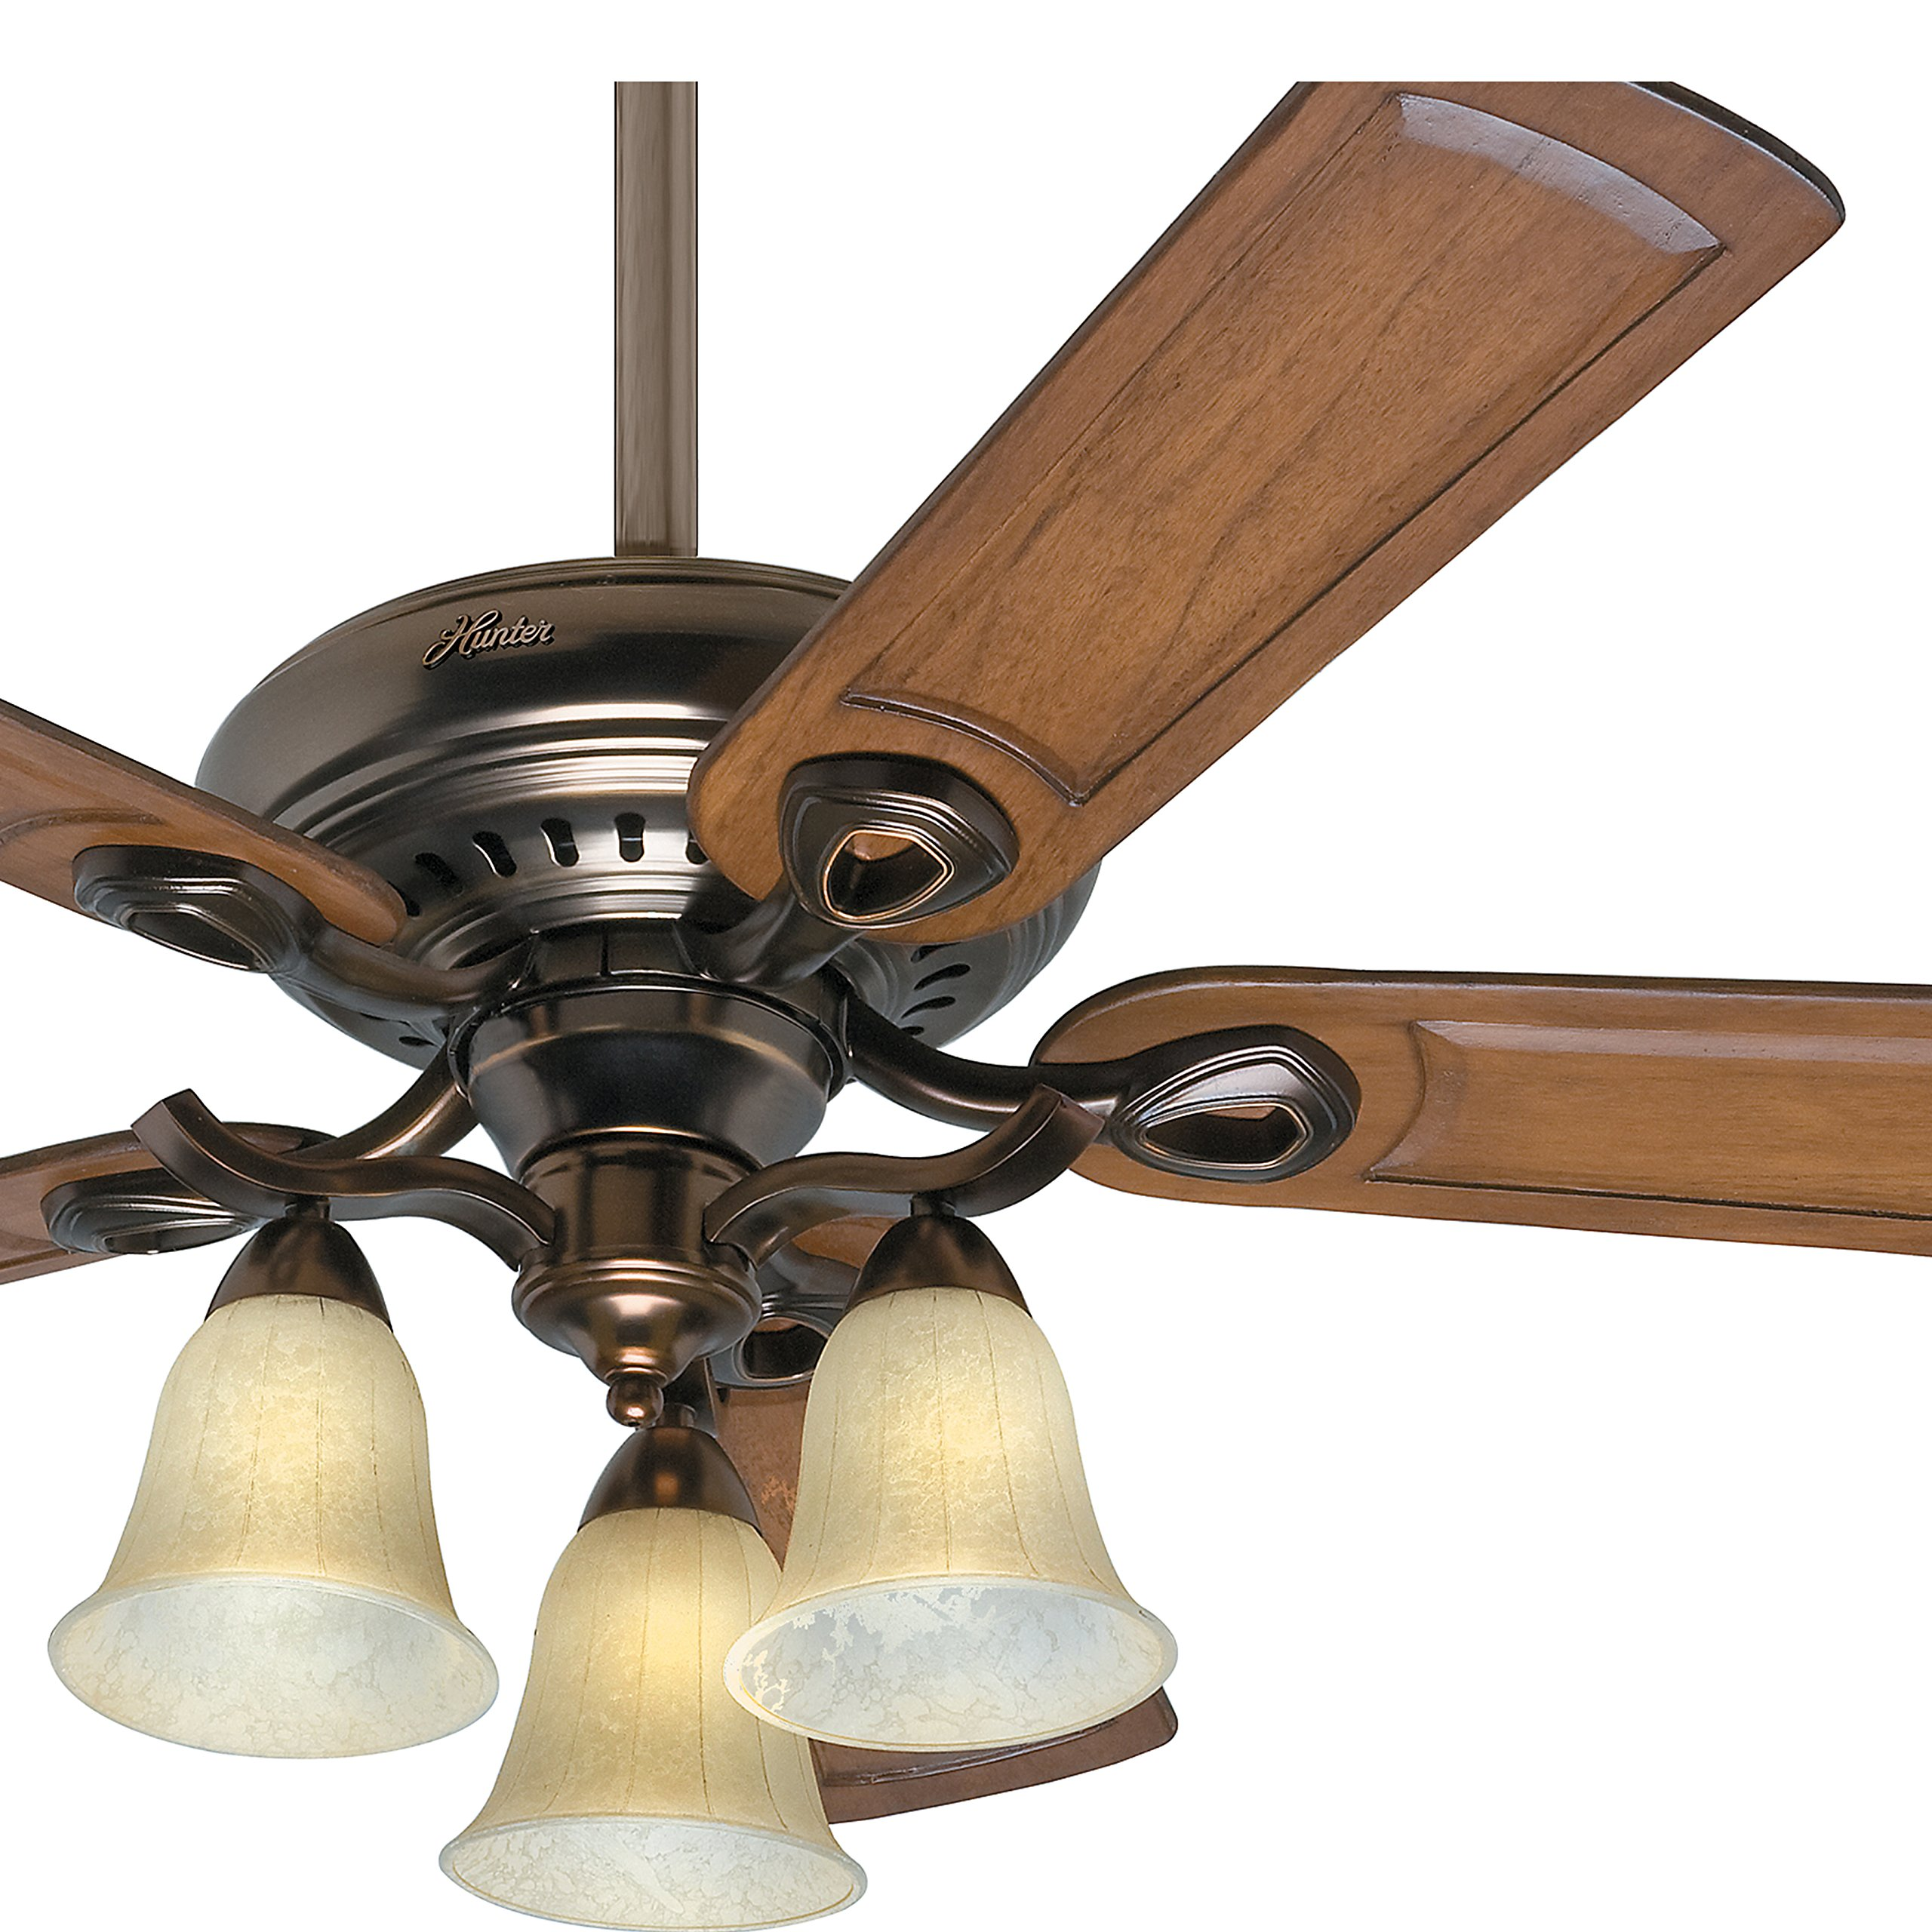 Hunter Fan 52'' Traditional Ceiling Fan in Bronze Patina with Light Kit and 5 Caramel Carved Wood Blades (Certified Refurbished)